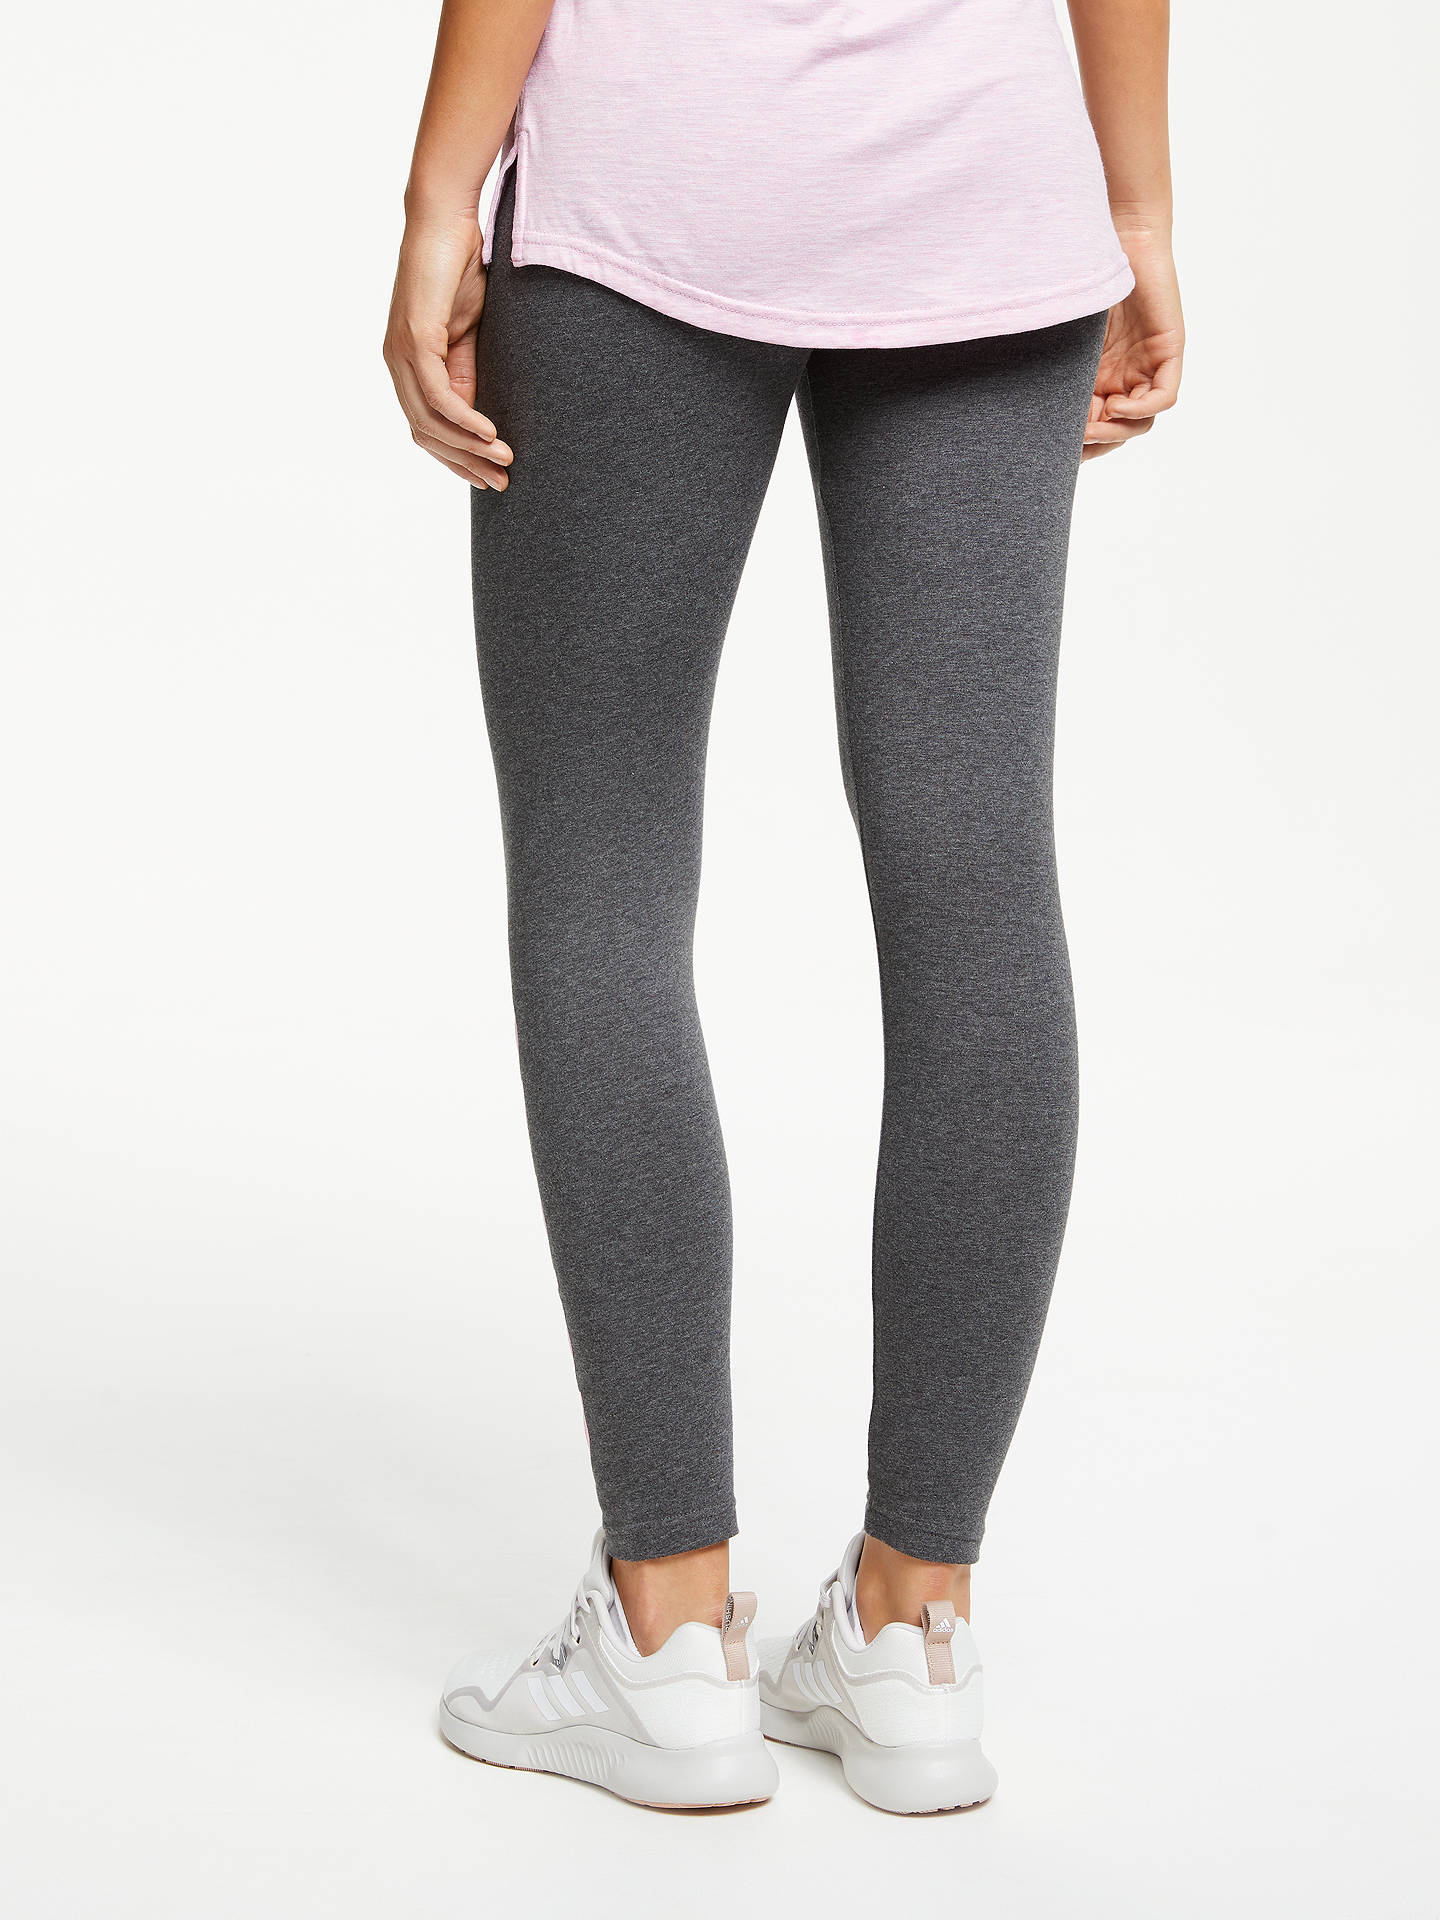 6ffd5a0d5 adidas Essentials Linear Tights at John Lewis   Partners